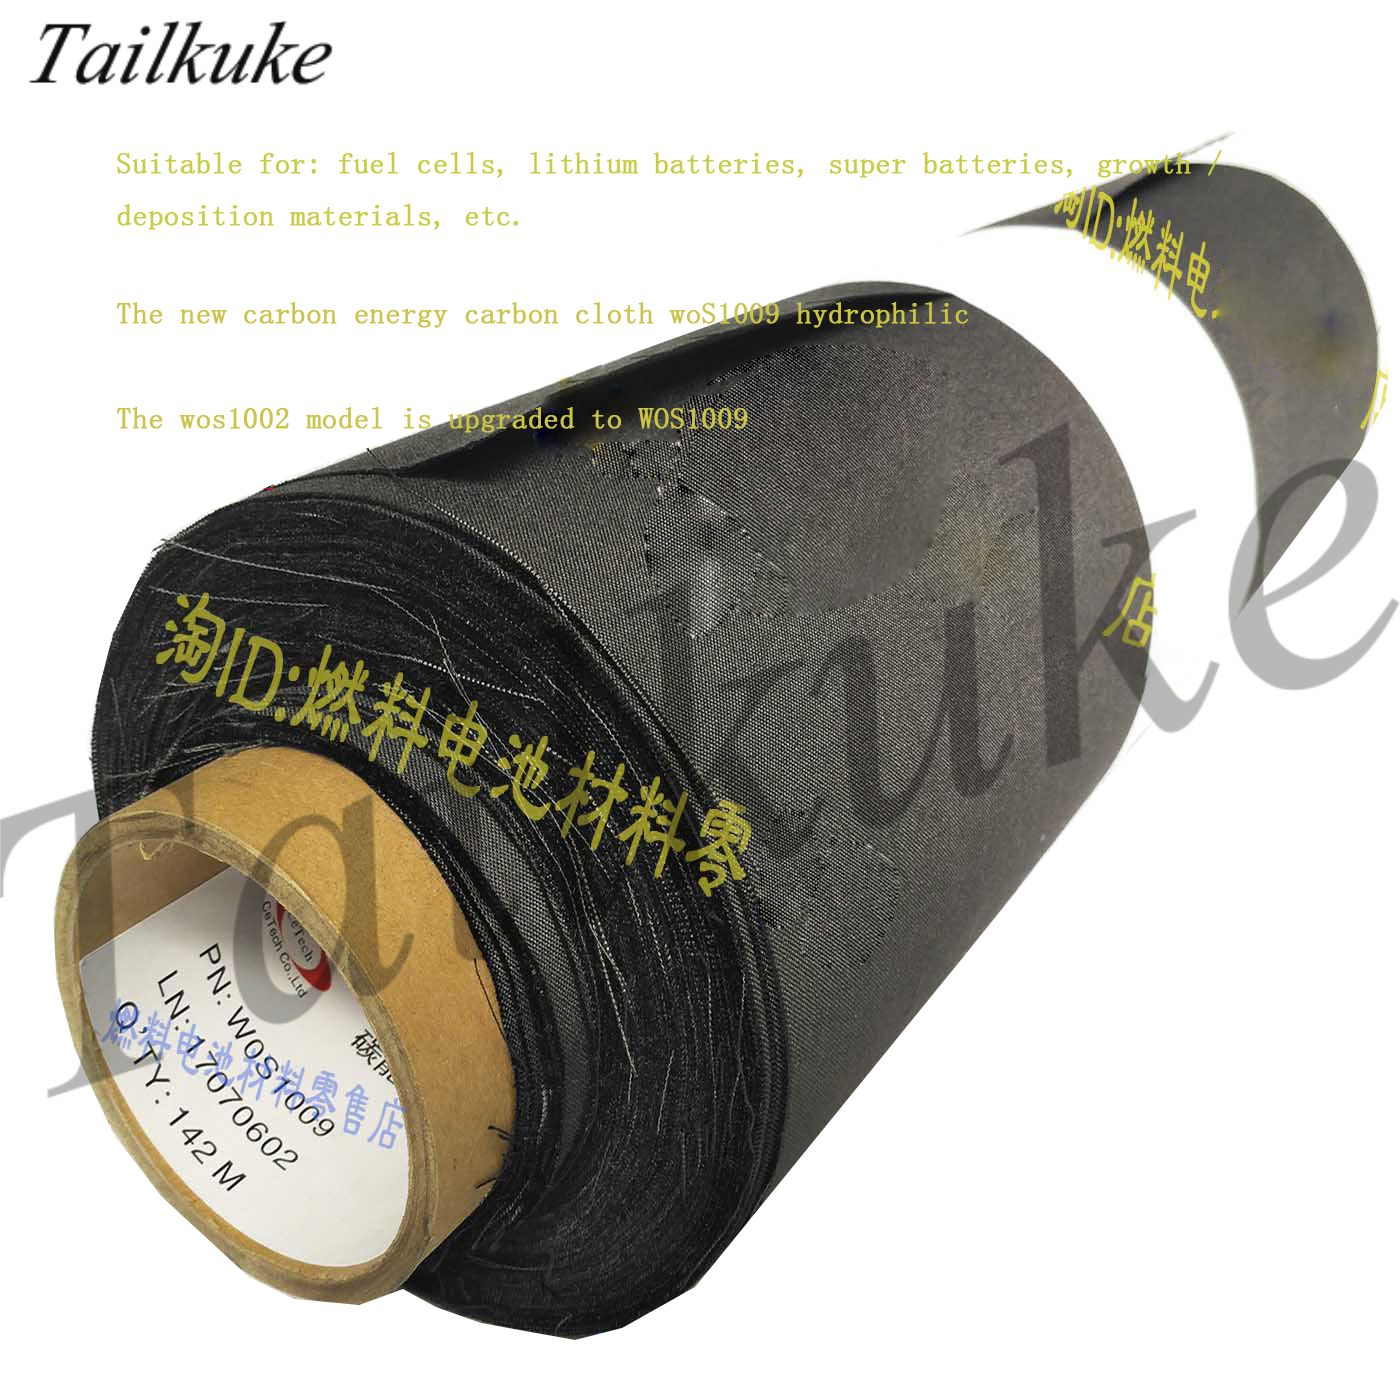 Carbon Energy Carbon Cloth Battery Flexible Hydrophilic Conductive Taiwan High Quality Carbon Cloth W0S1002 / W0S1009